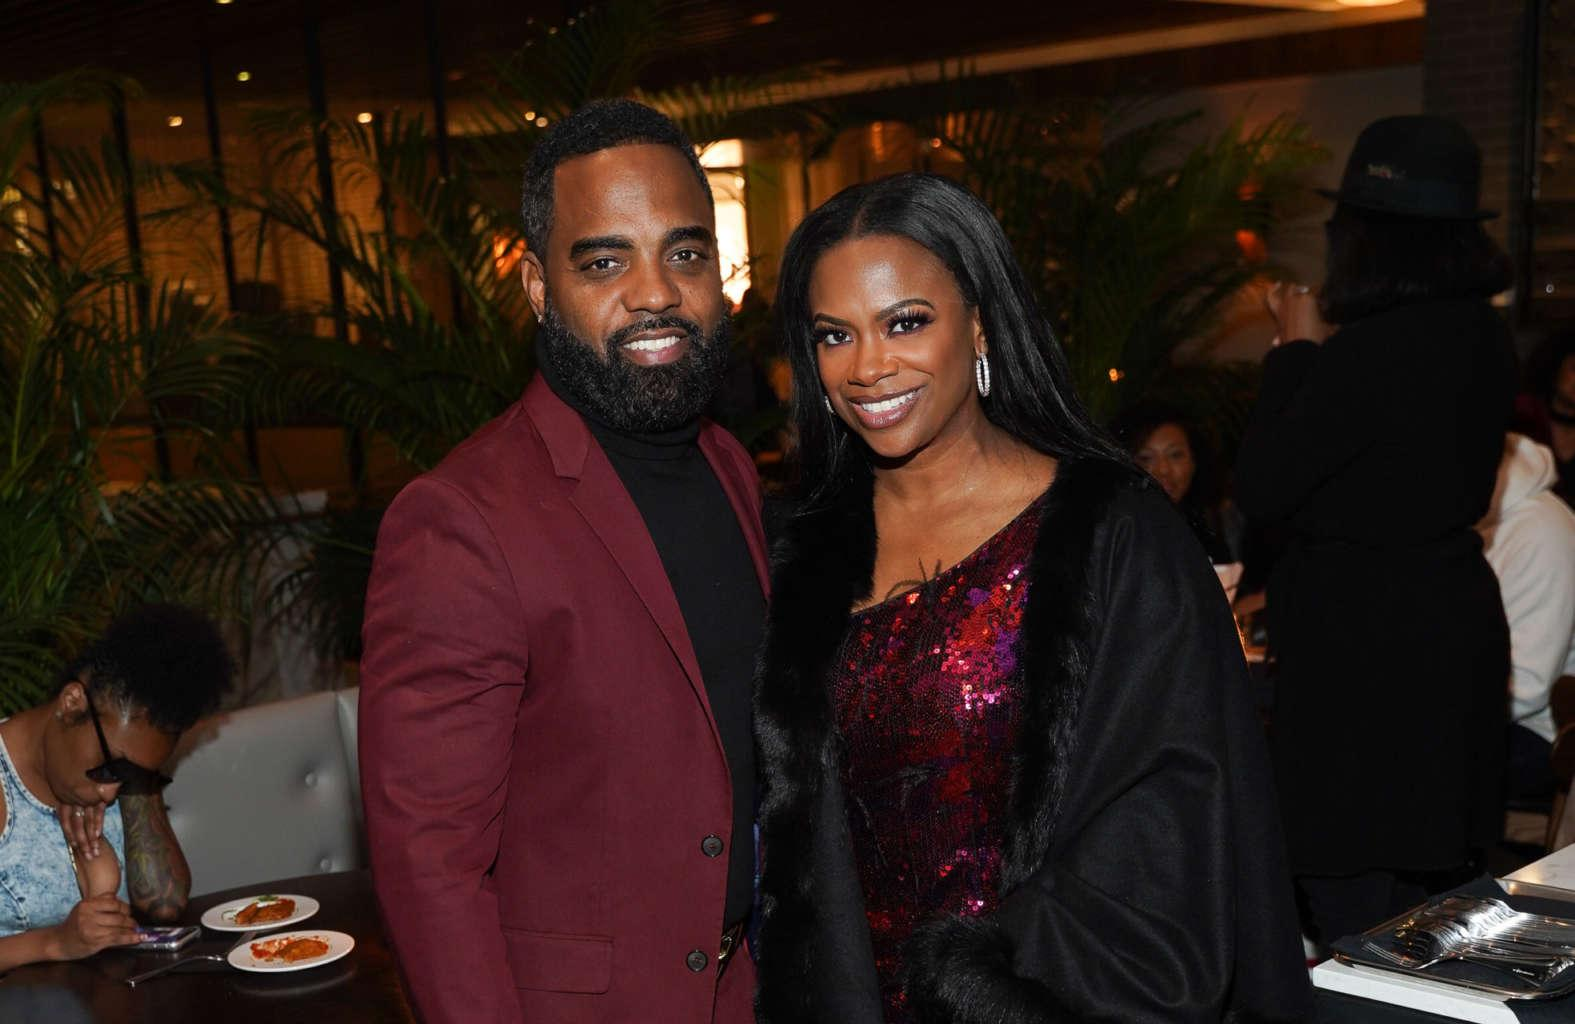 Kandi Burruss' Clip In Which She Morphs Into Her Baby Girl, Blaze Tucker Has Fans In Awe